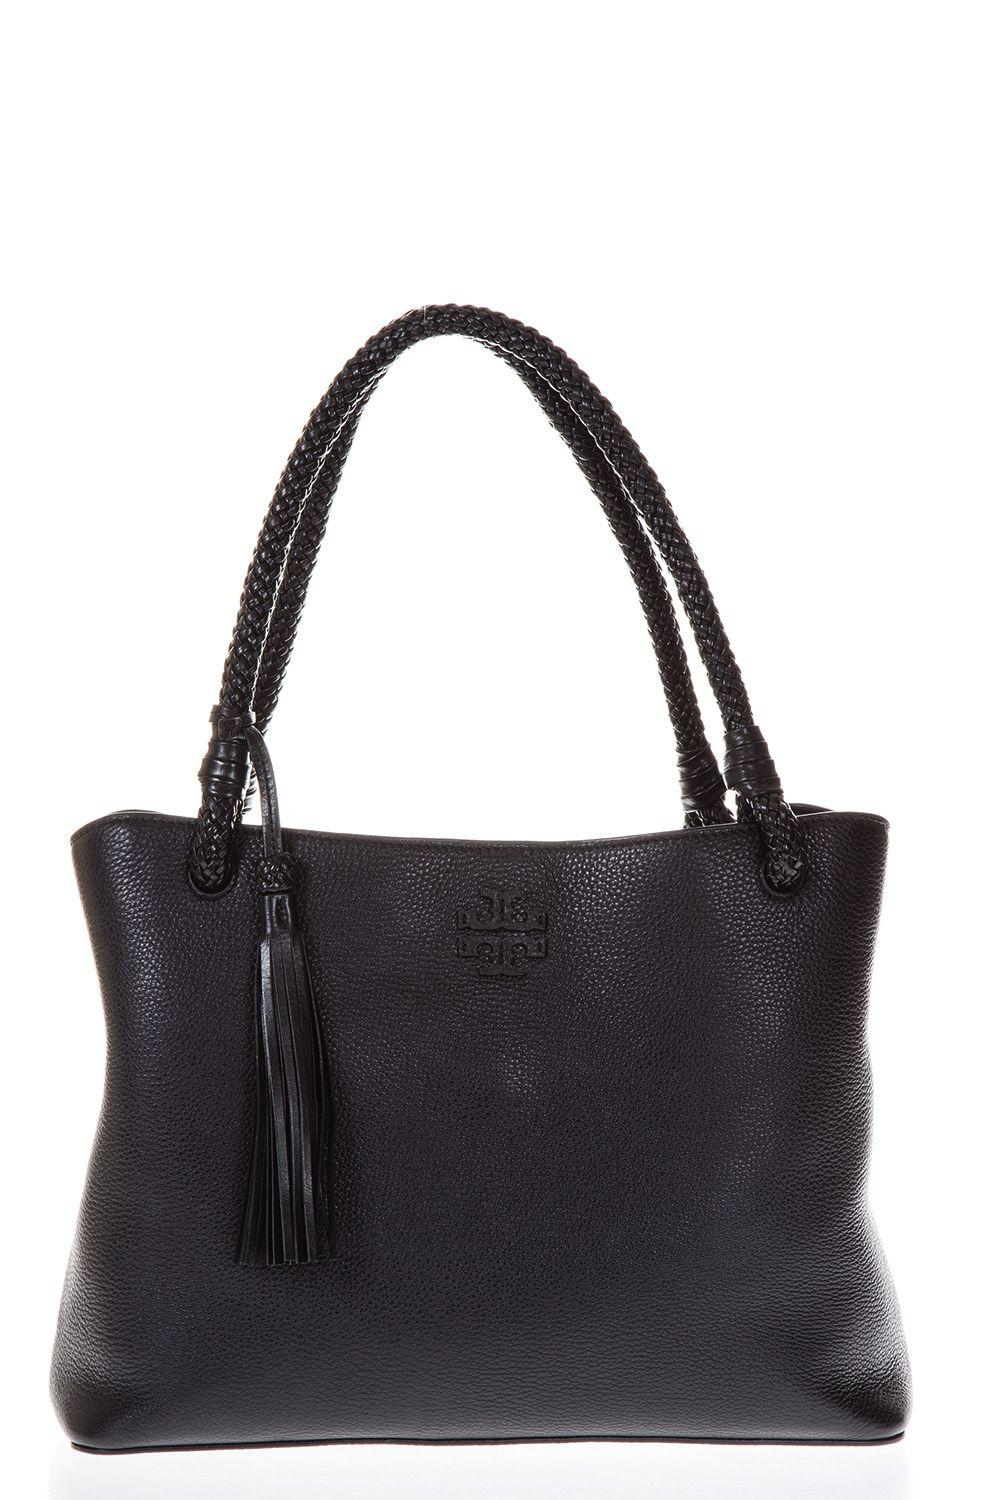 Tory Burch Taylor Triple Leather Tote In Black